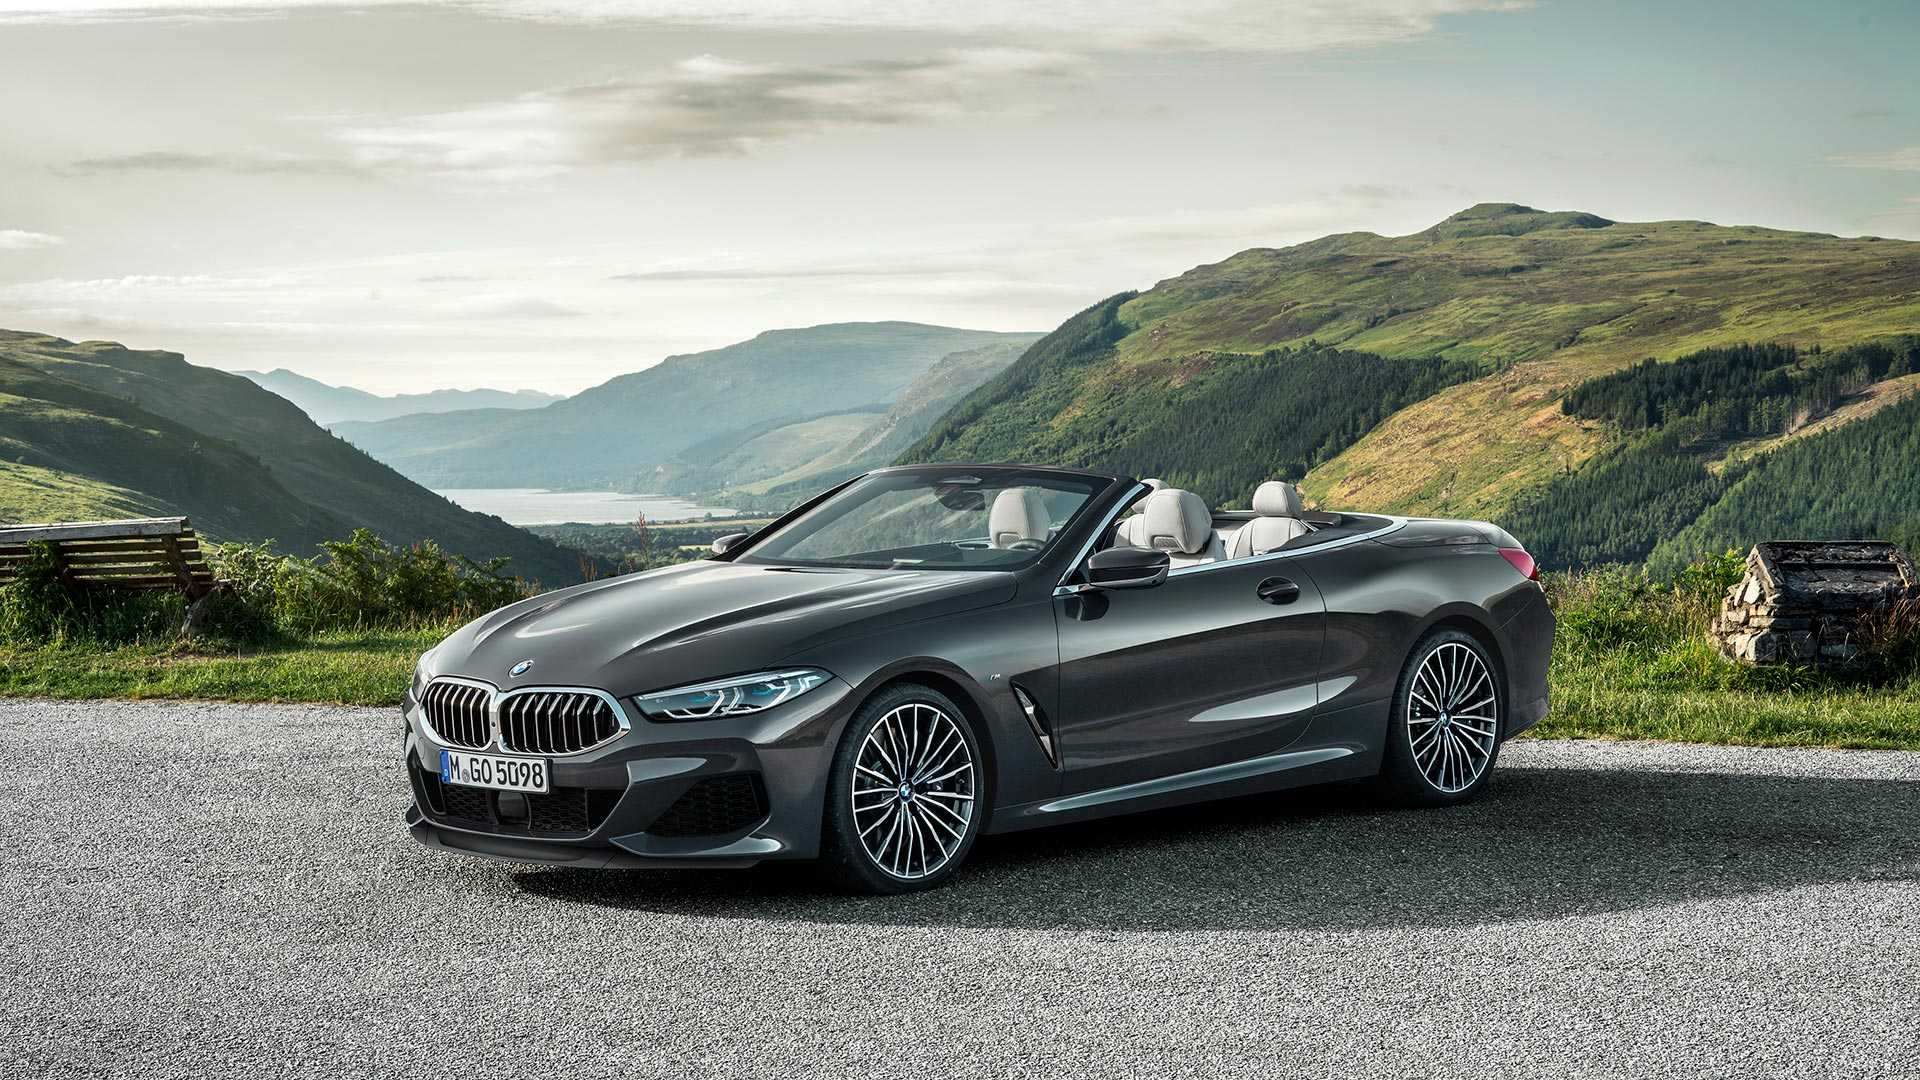 70 Gallery of Bmw Hardtop Convertible 2019 Exterior Photos by Bmw Hardtop Convertible 2019 Exterior